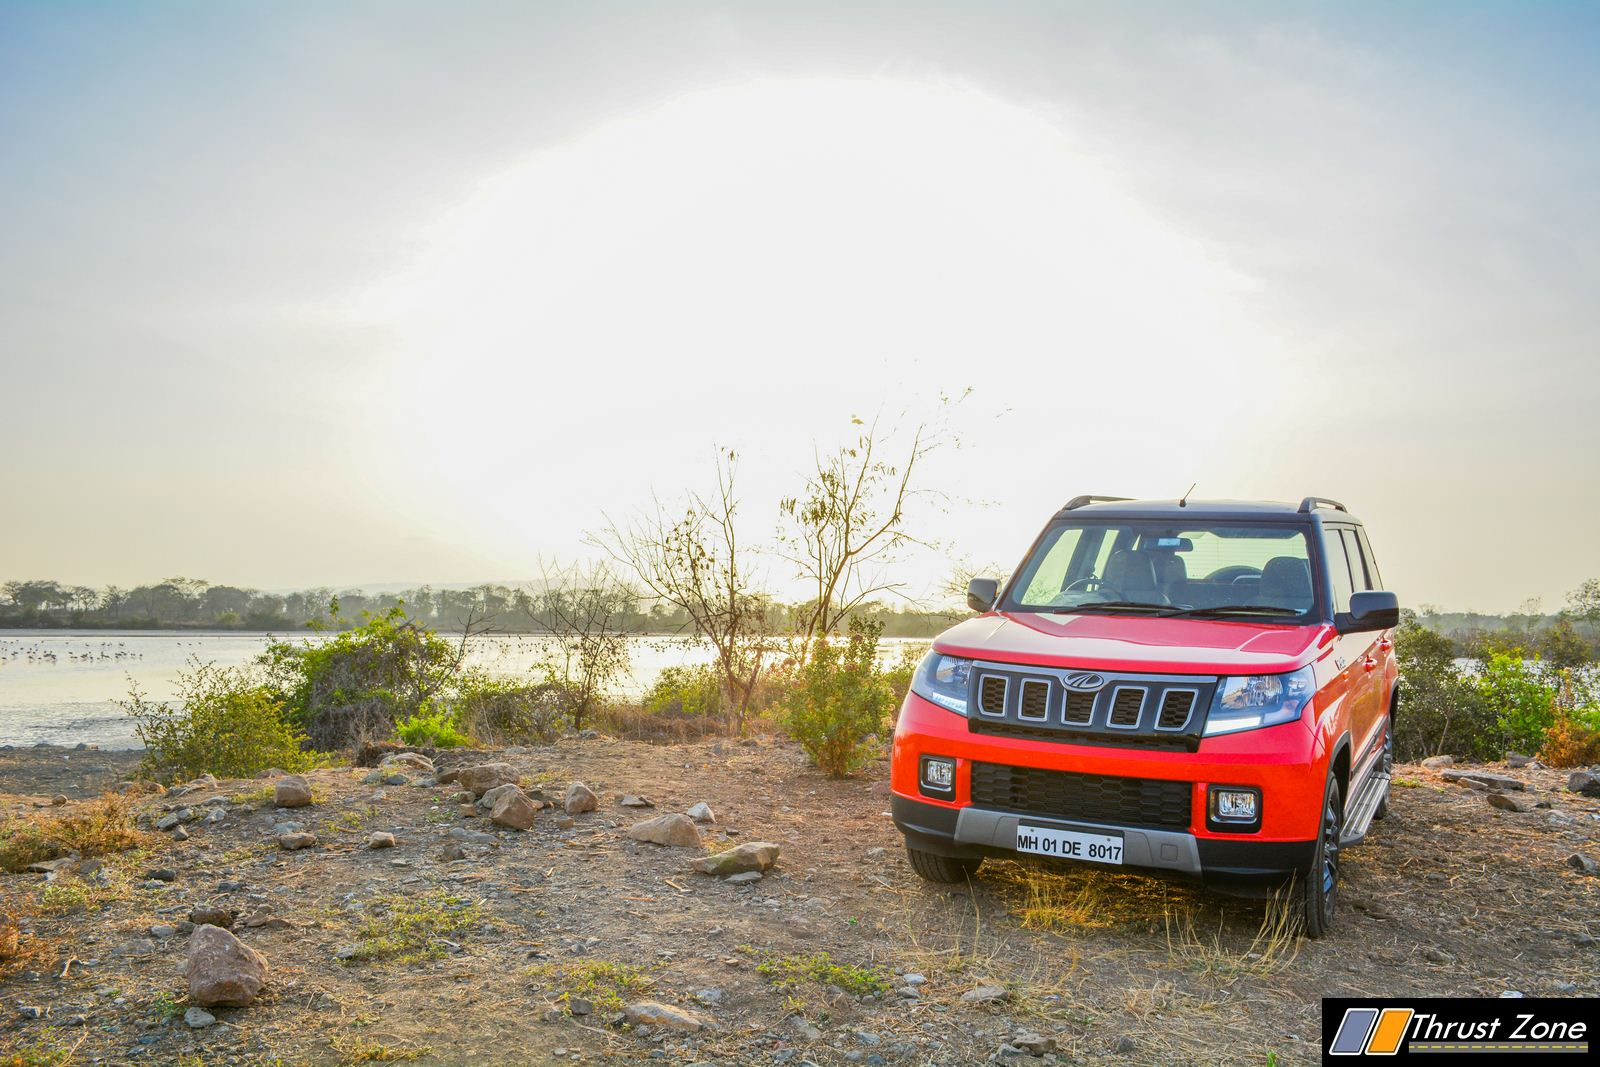 https://www.thrustzone.com/wp-content/uploads/2019/06/2019-mahindra-tuv-300-facelift-review-7-2.jpg